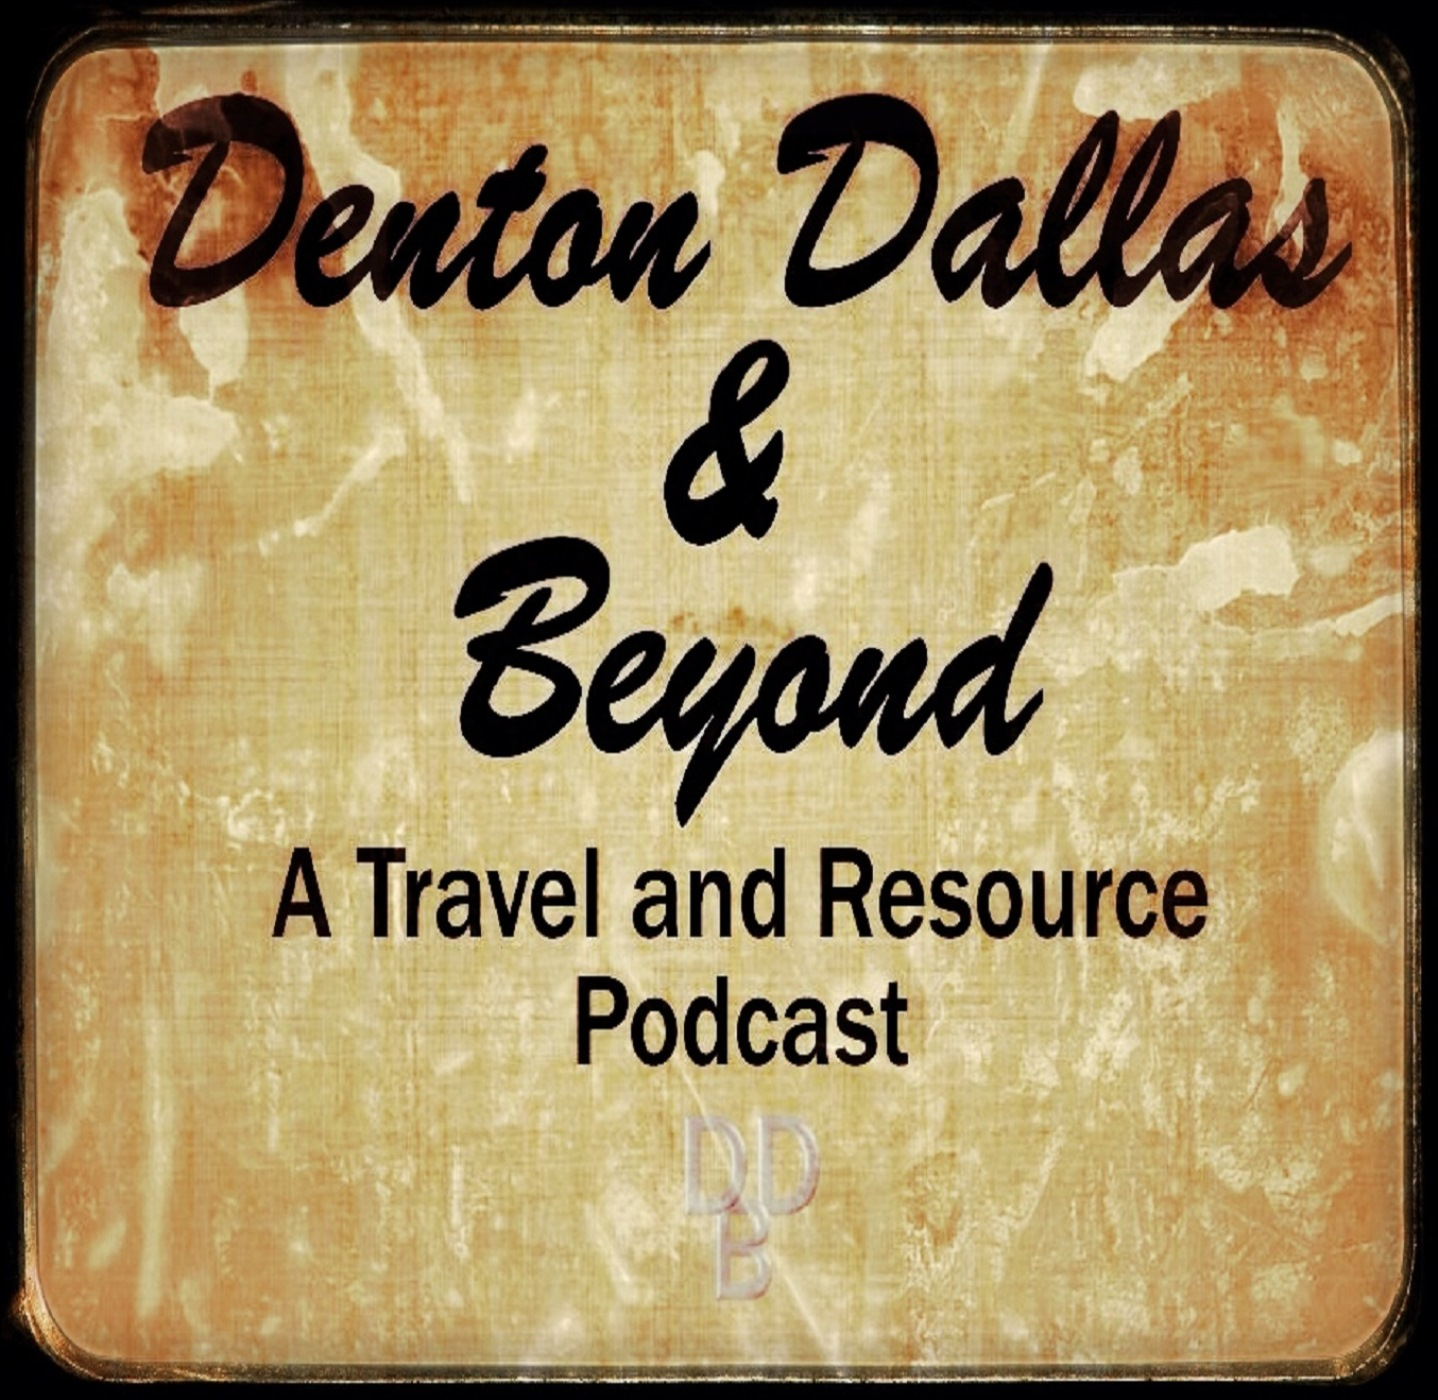 Denton Dallas and Beyond